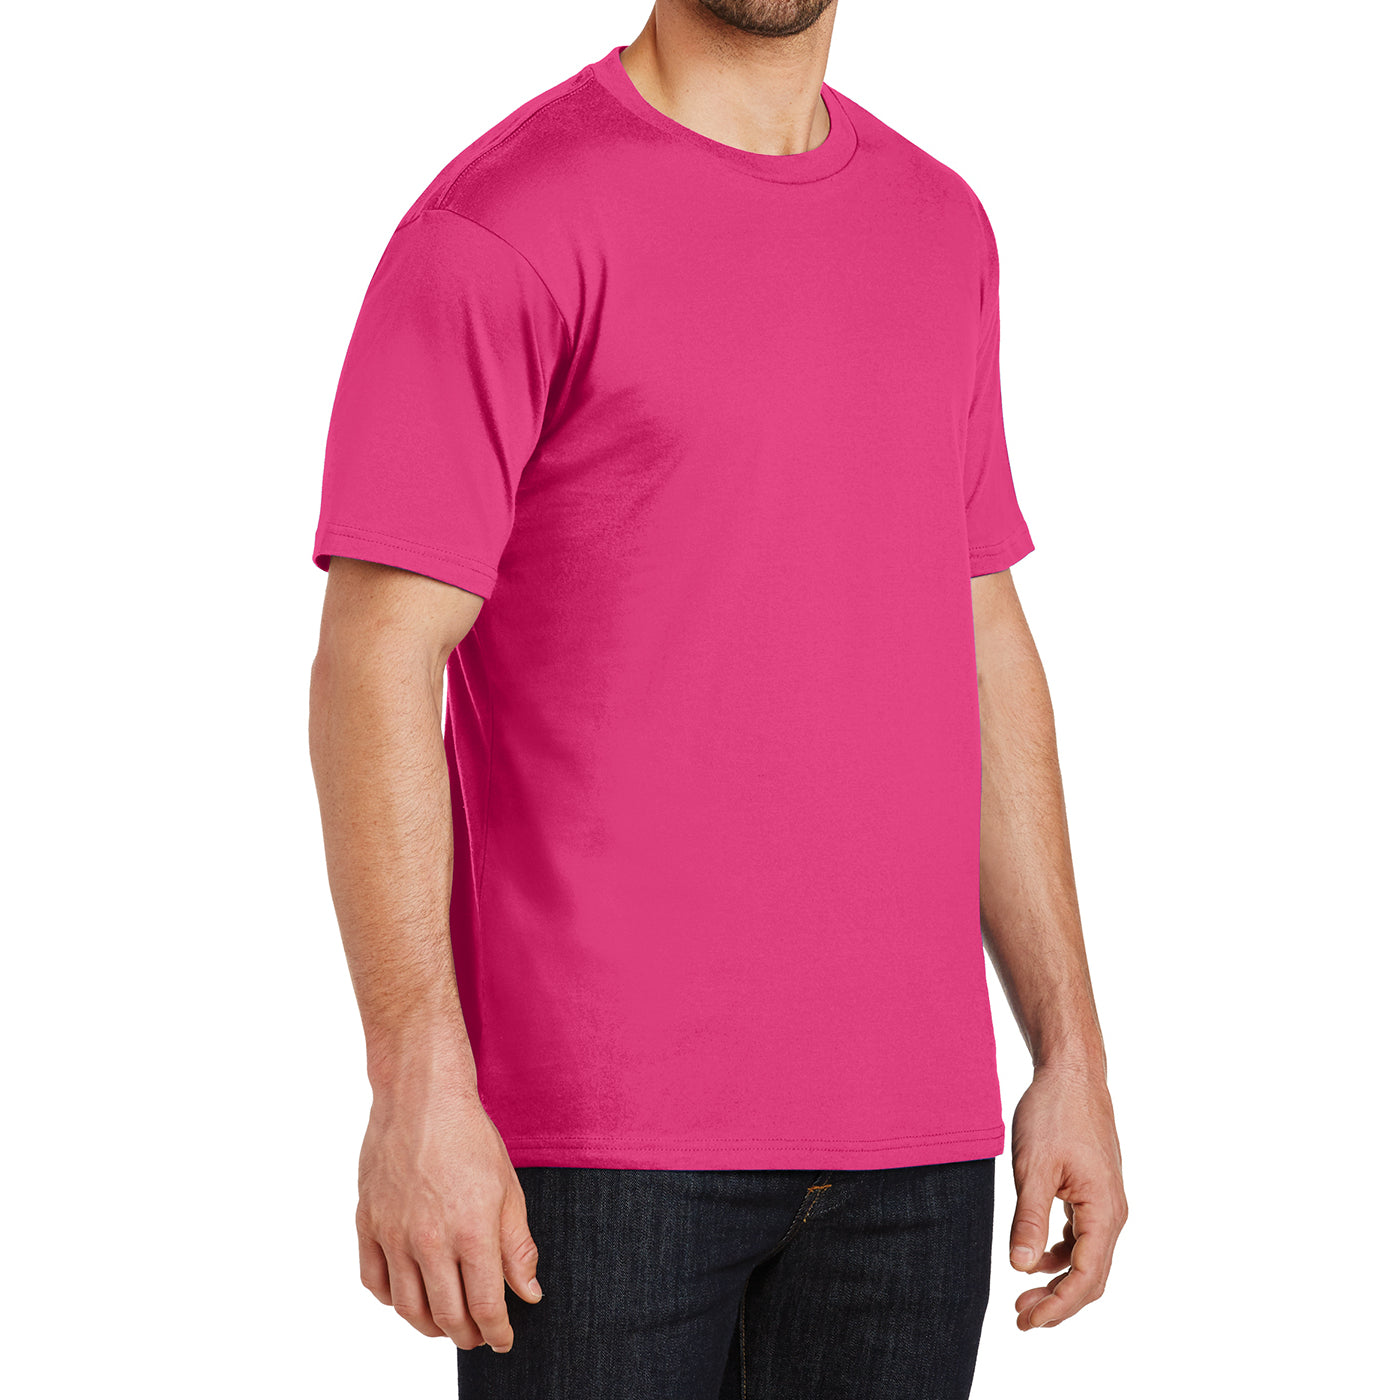 Mens Perfect Weight Crew Tee - Dark Fuchsia- Side